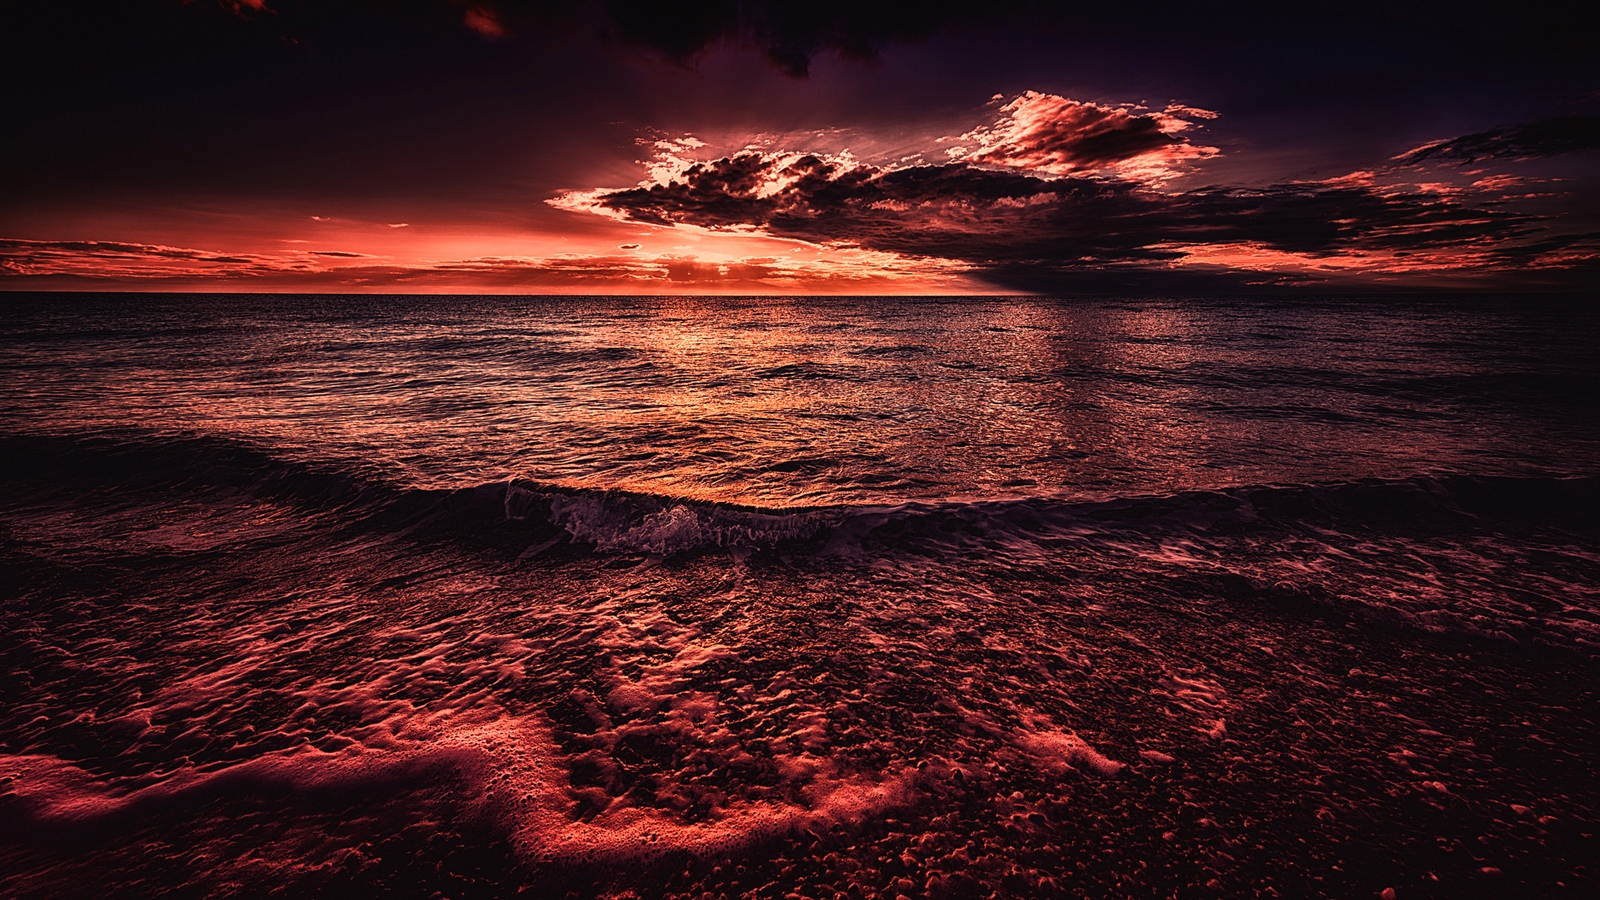 Sea, sunset, evening, red style 1600x900 wallpaper